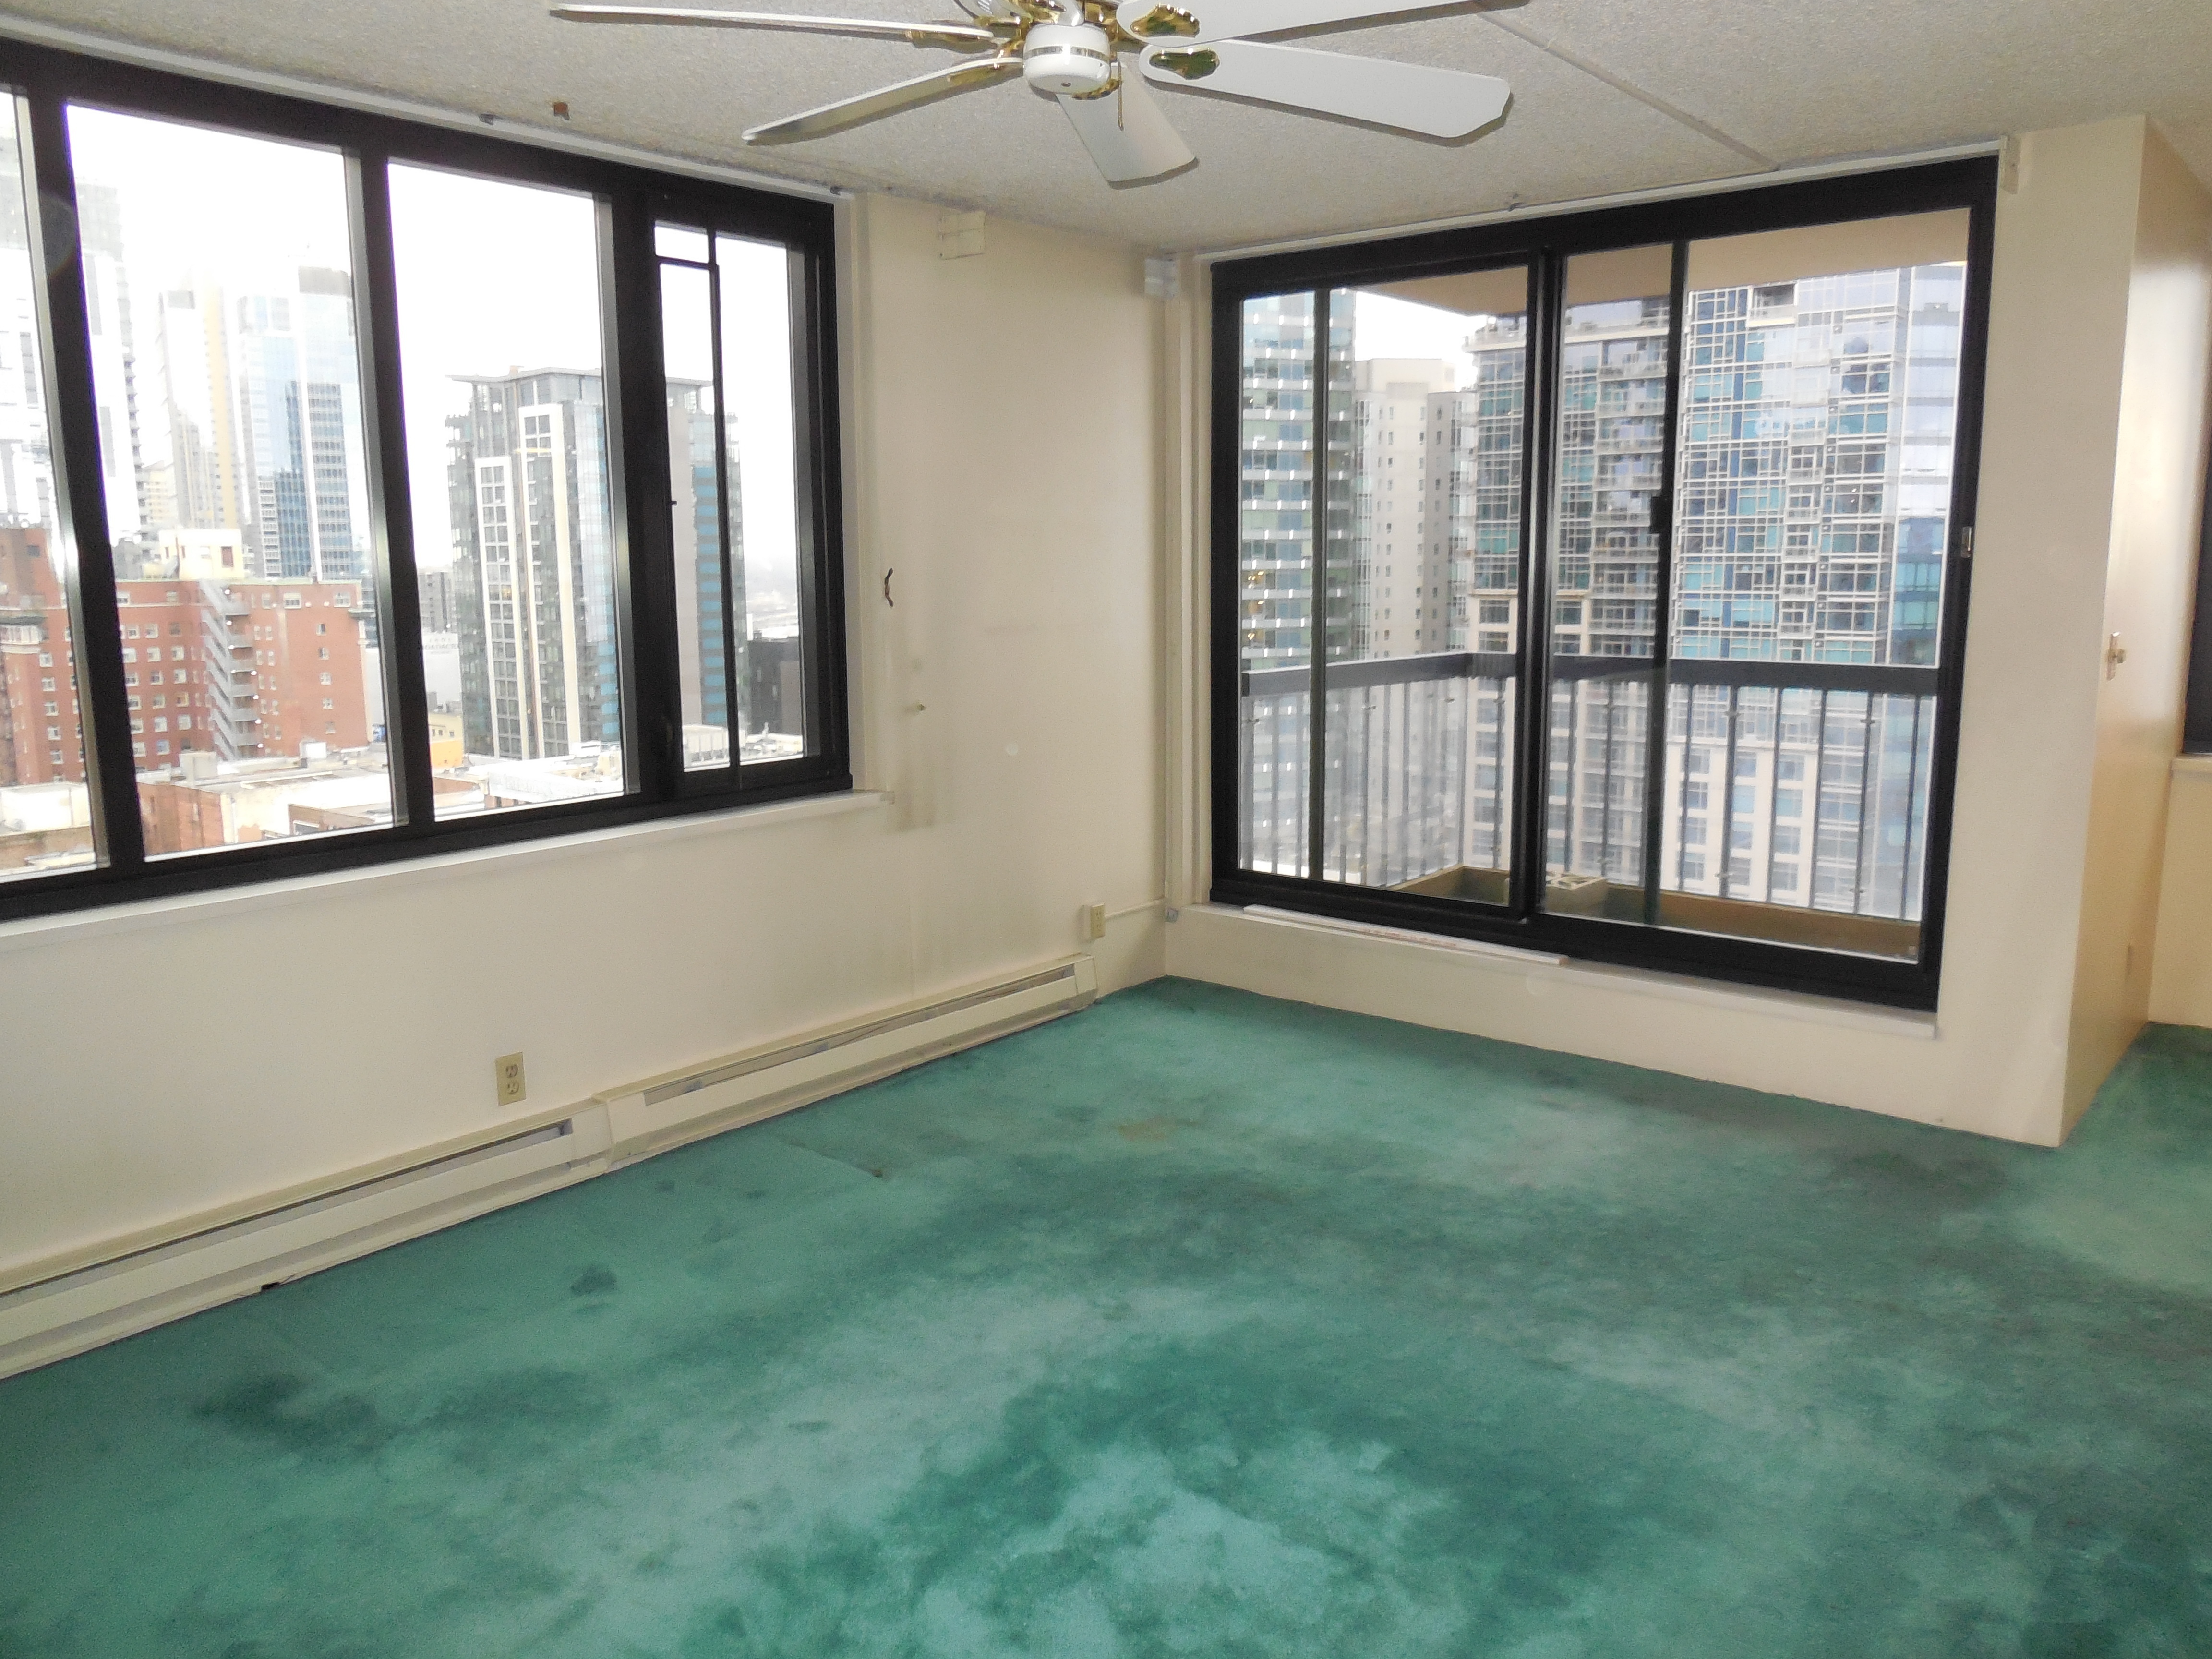 Downtown Seattle-Water Views for only $400,000